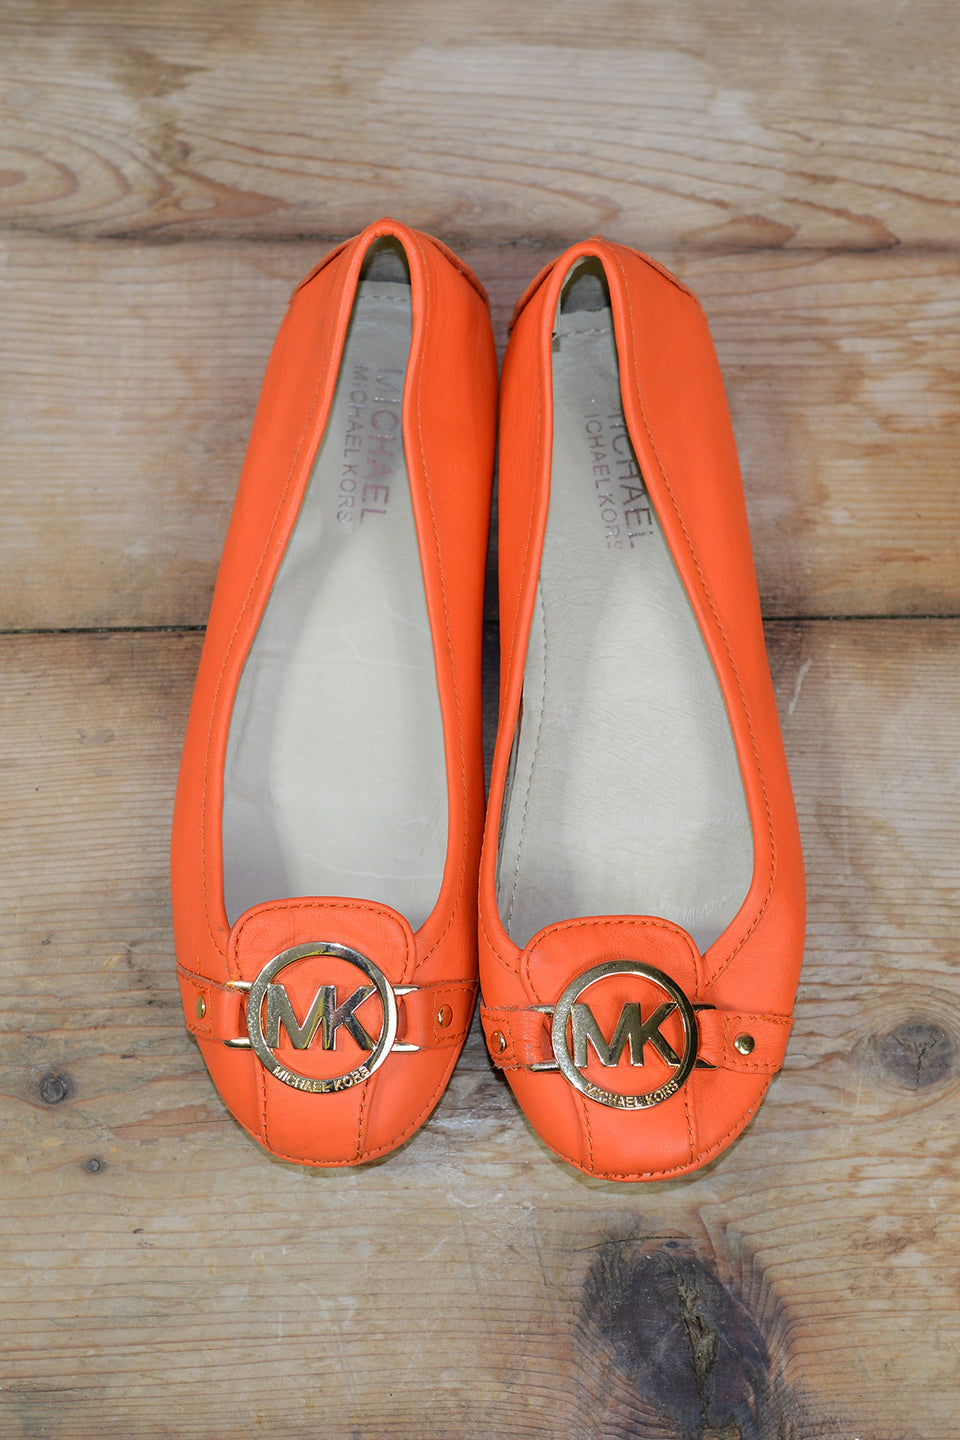 MICHEAL KORS Orange Leather Ballet Flats Size 37. Pre-loved.